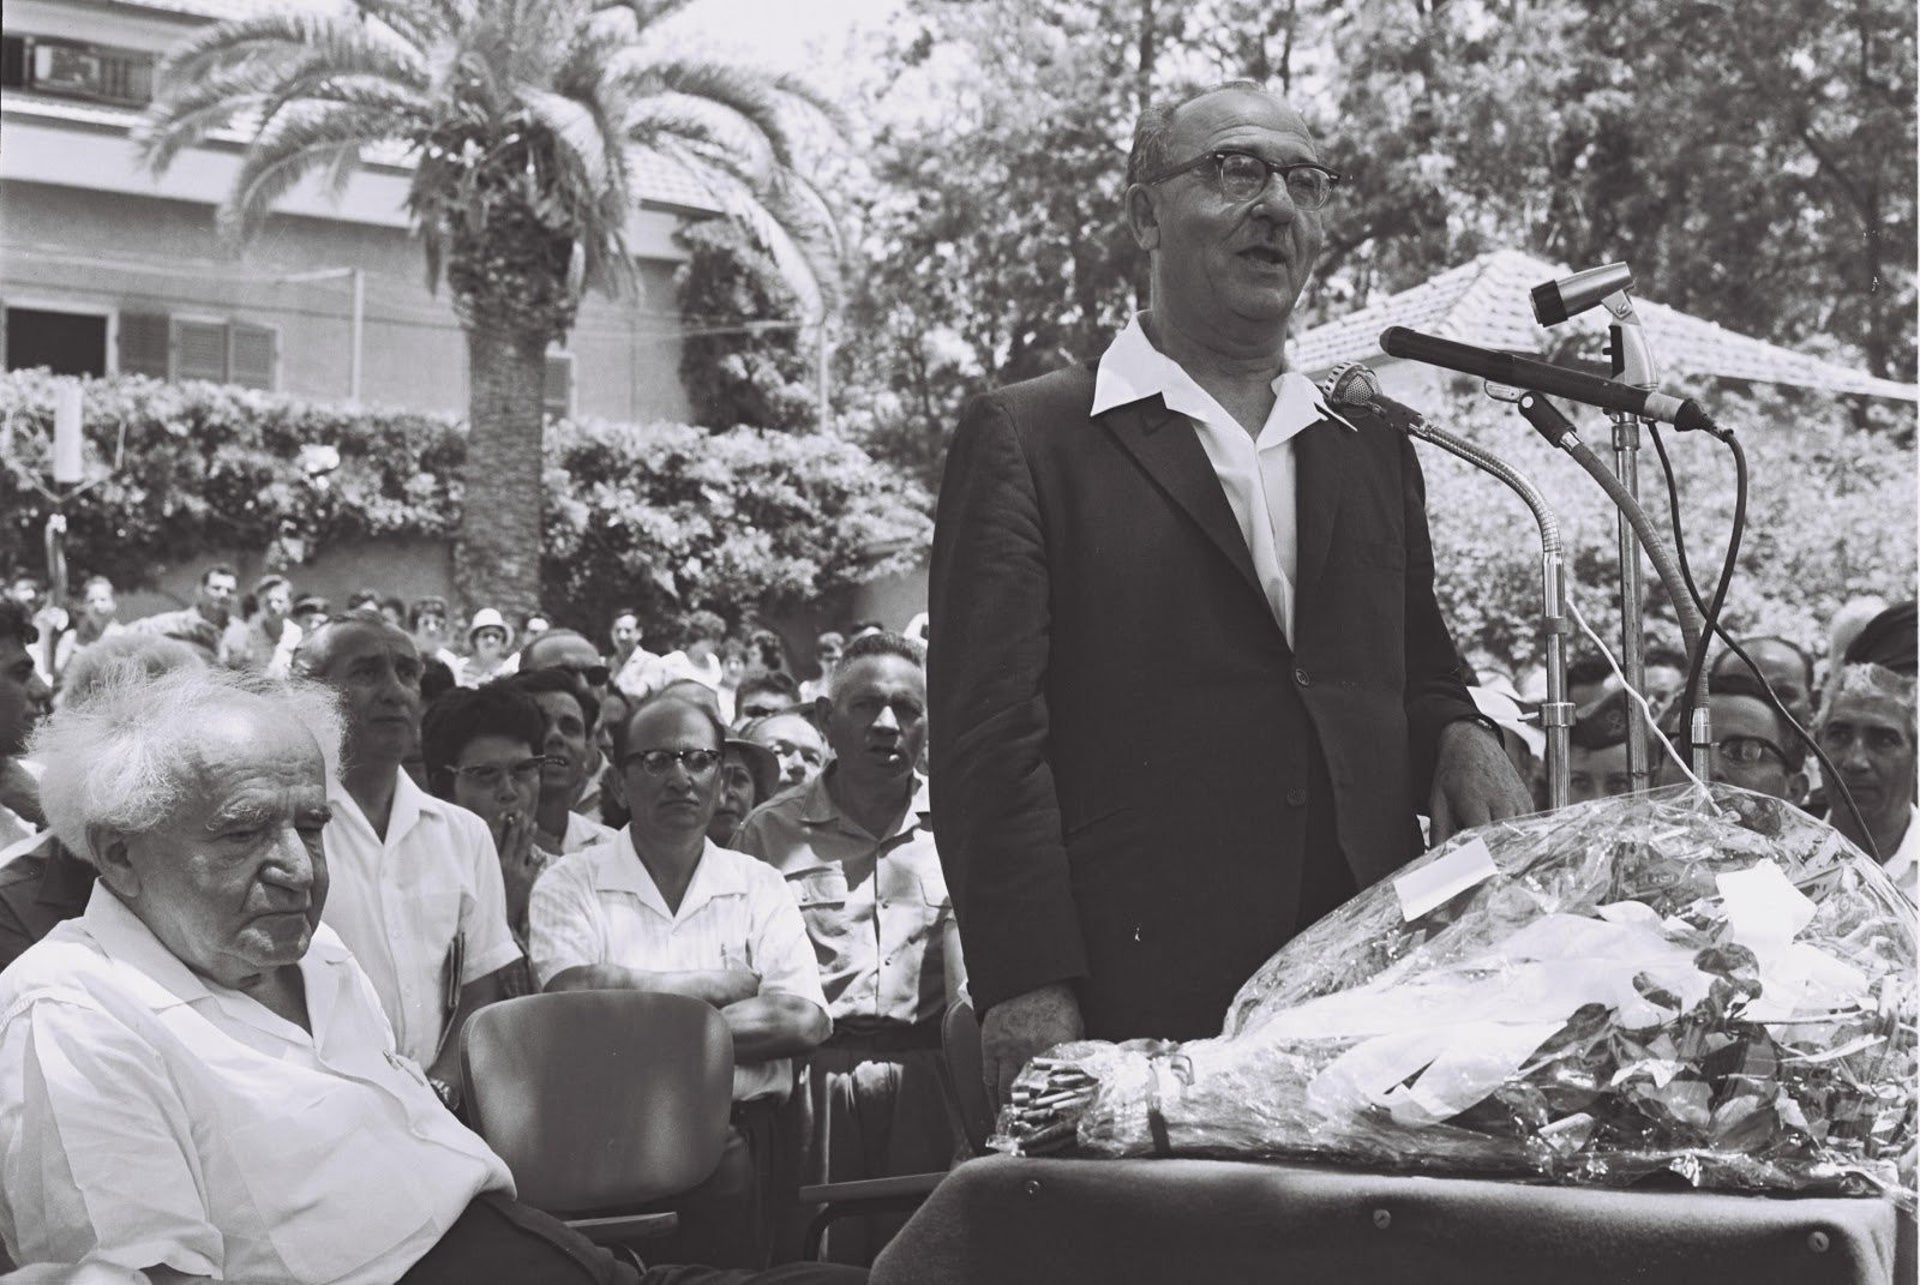 The 1963 ceremony in which Levi Eshkol took over from Ben-Gurion as premier, in the garden outside the PMO in the Kirya.